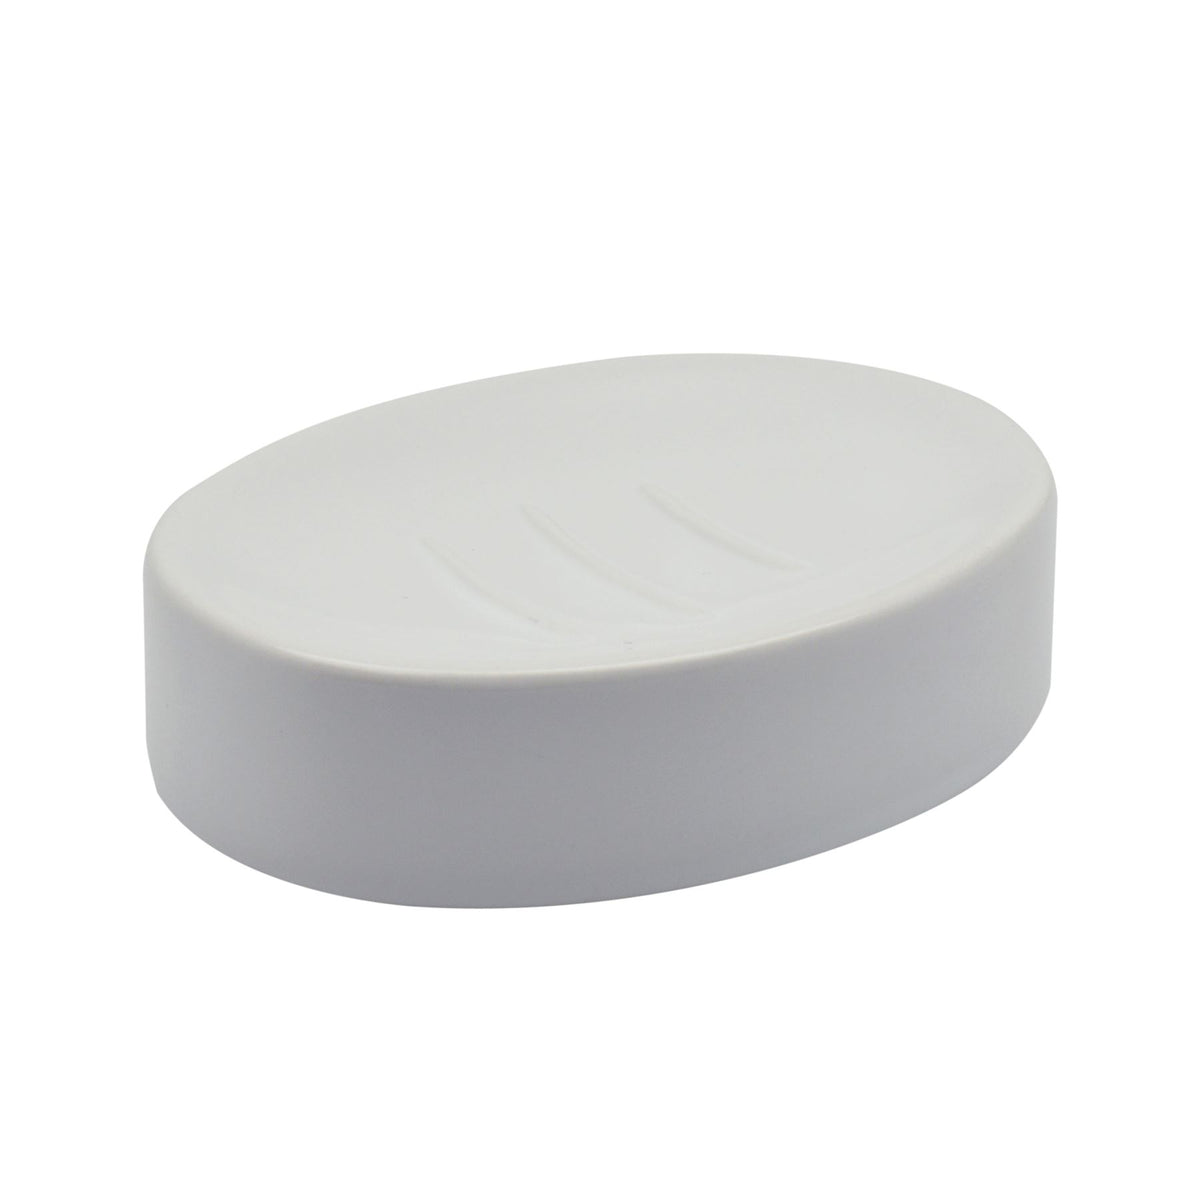 Harbour Housewares Ceramic Soap Saver Dish - White